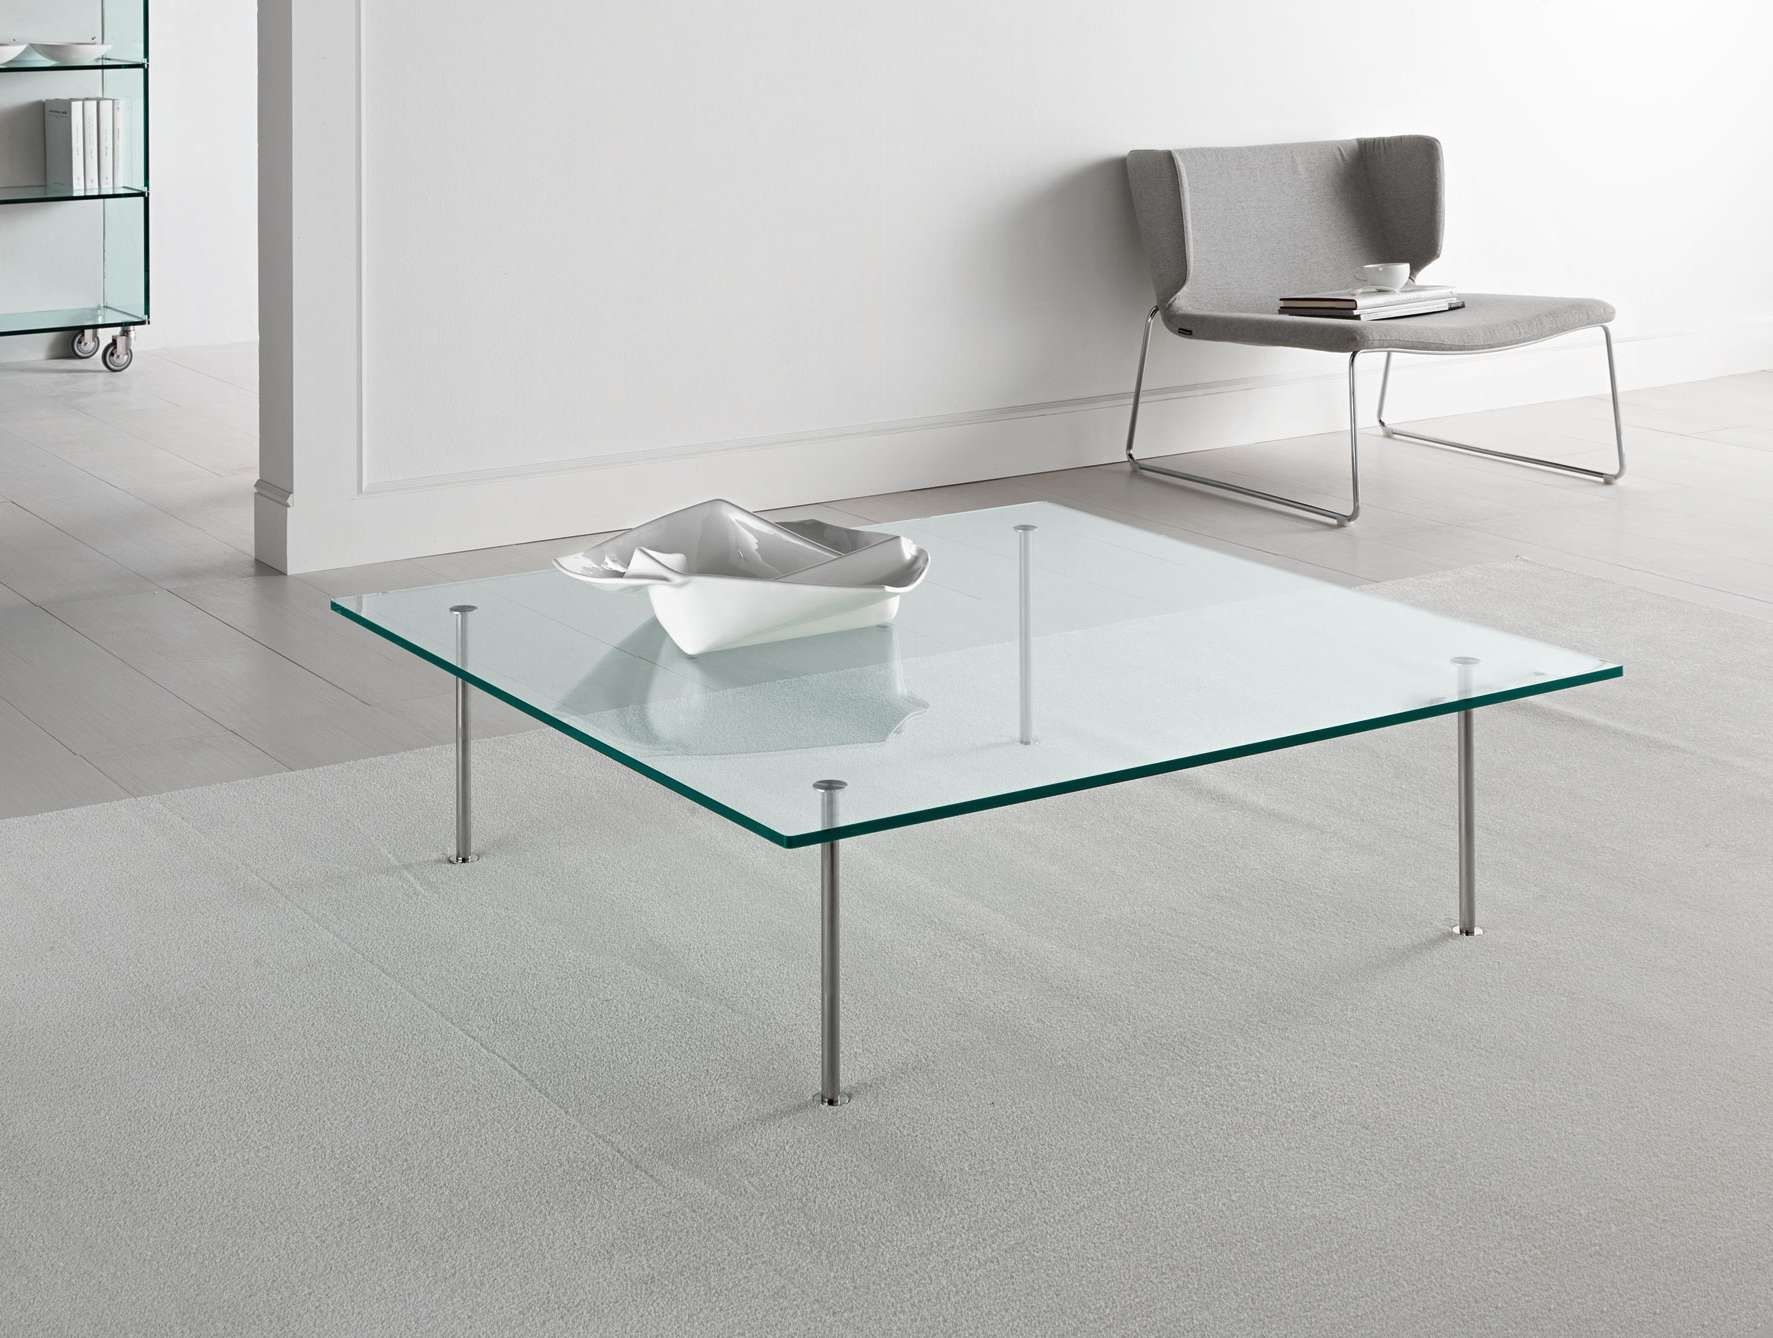 Nella Vetrina Tonelli Twig Modular Italian Square Coffee Table For Recent Square Glass Coffee Tables (View 13 of 20)